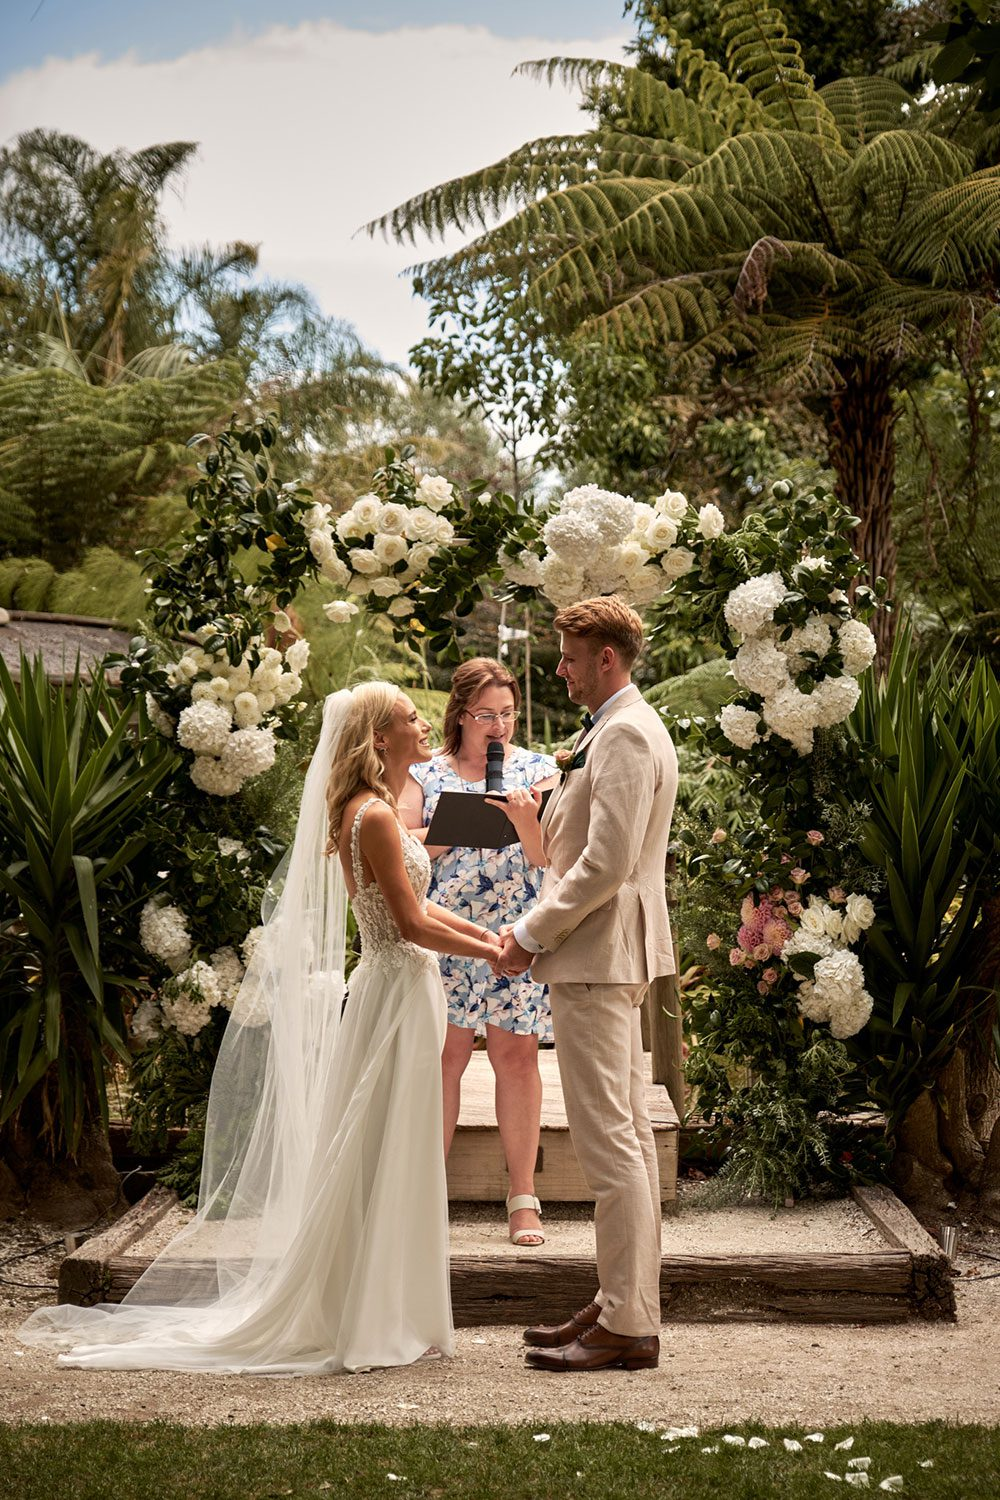 Bride wearing bespoke gown made of silk chiffon with delicate flower lace bodice by Vinka bridal designer Auckland - with groom and celebrant at alter